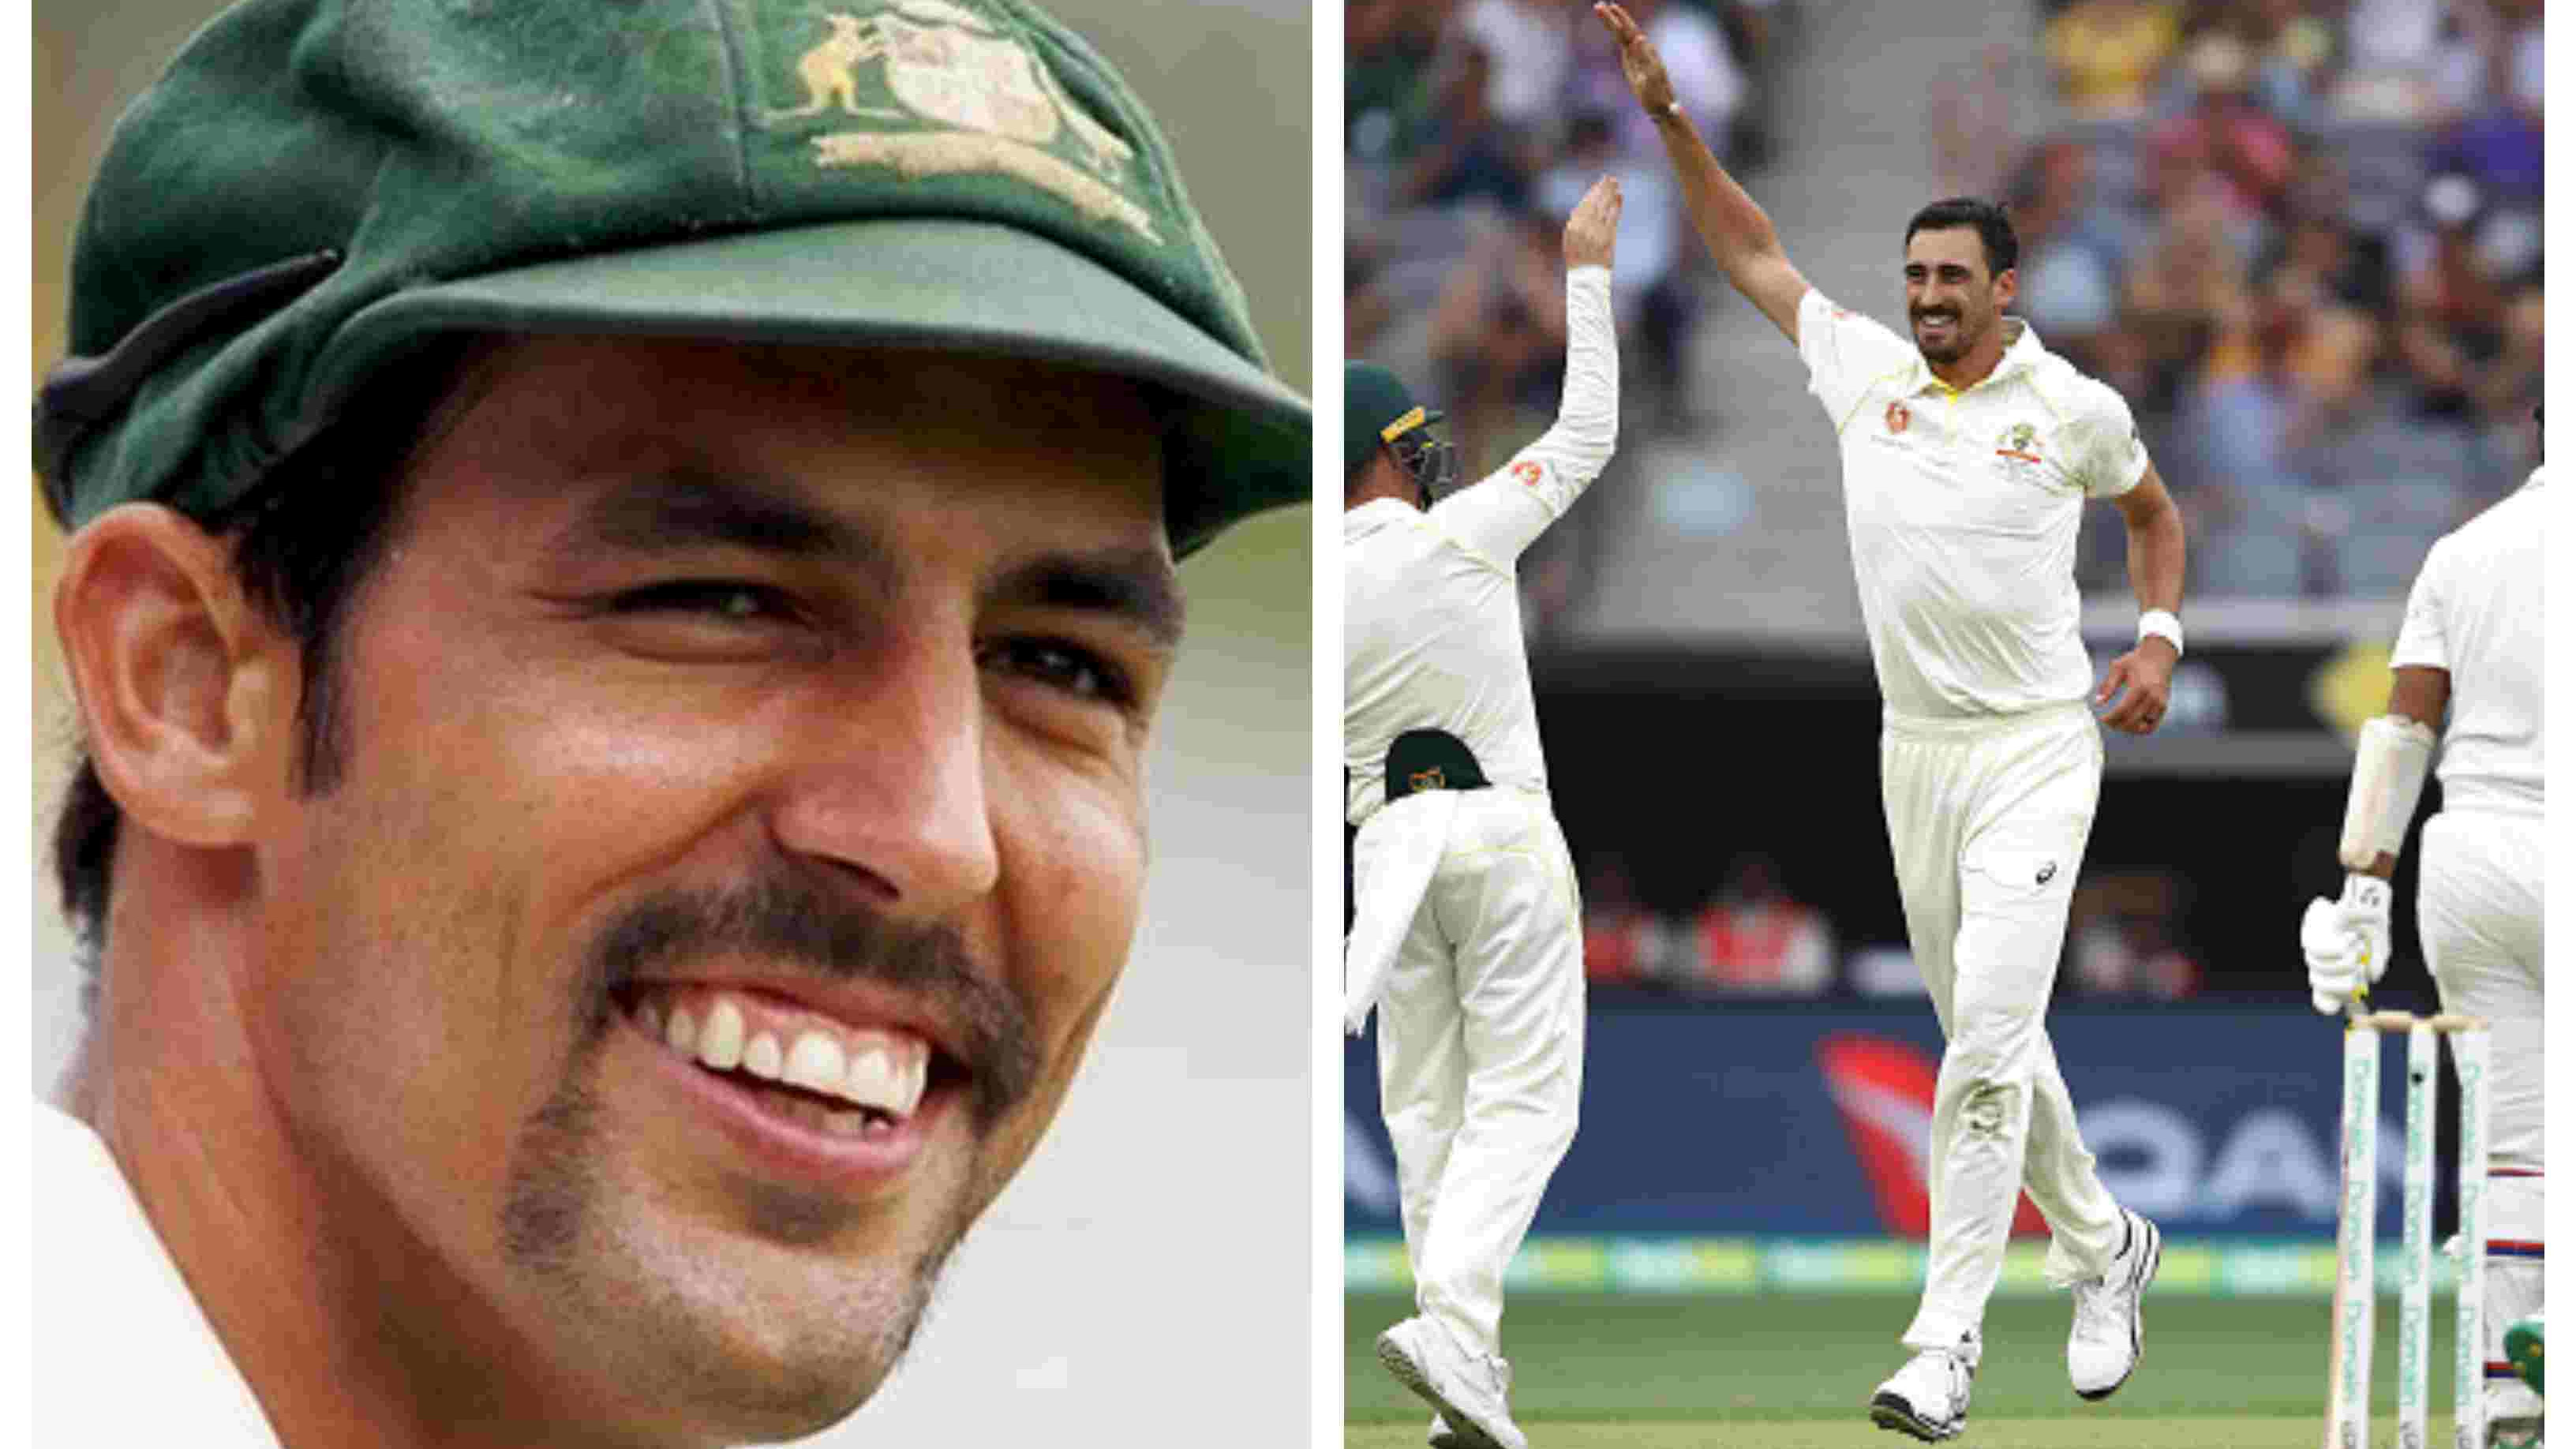 AUS v IND 2018-19: Mitchell Johnson impressed with Starc's aggressive approach on Day 2